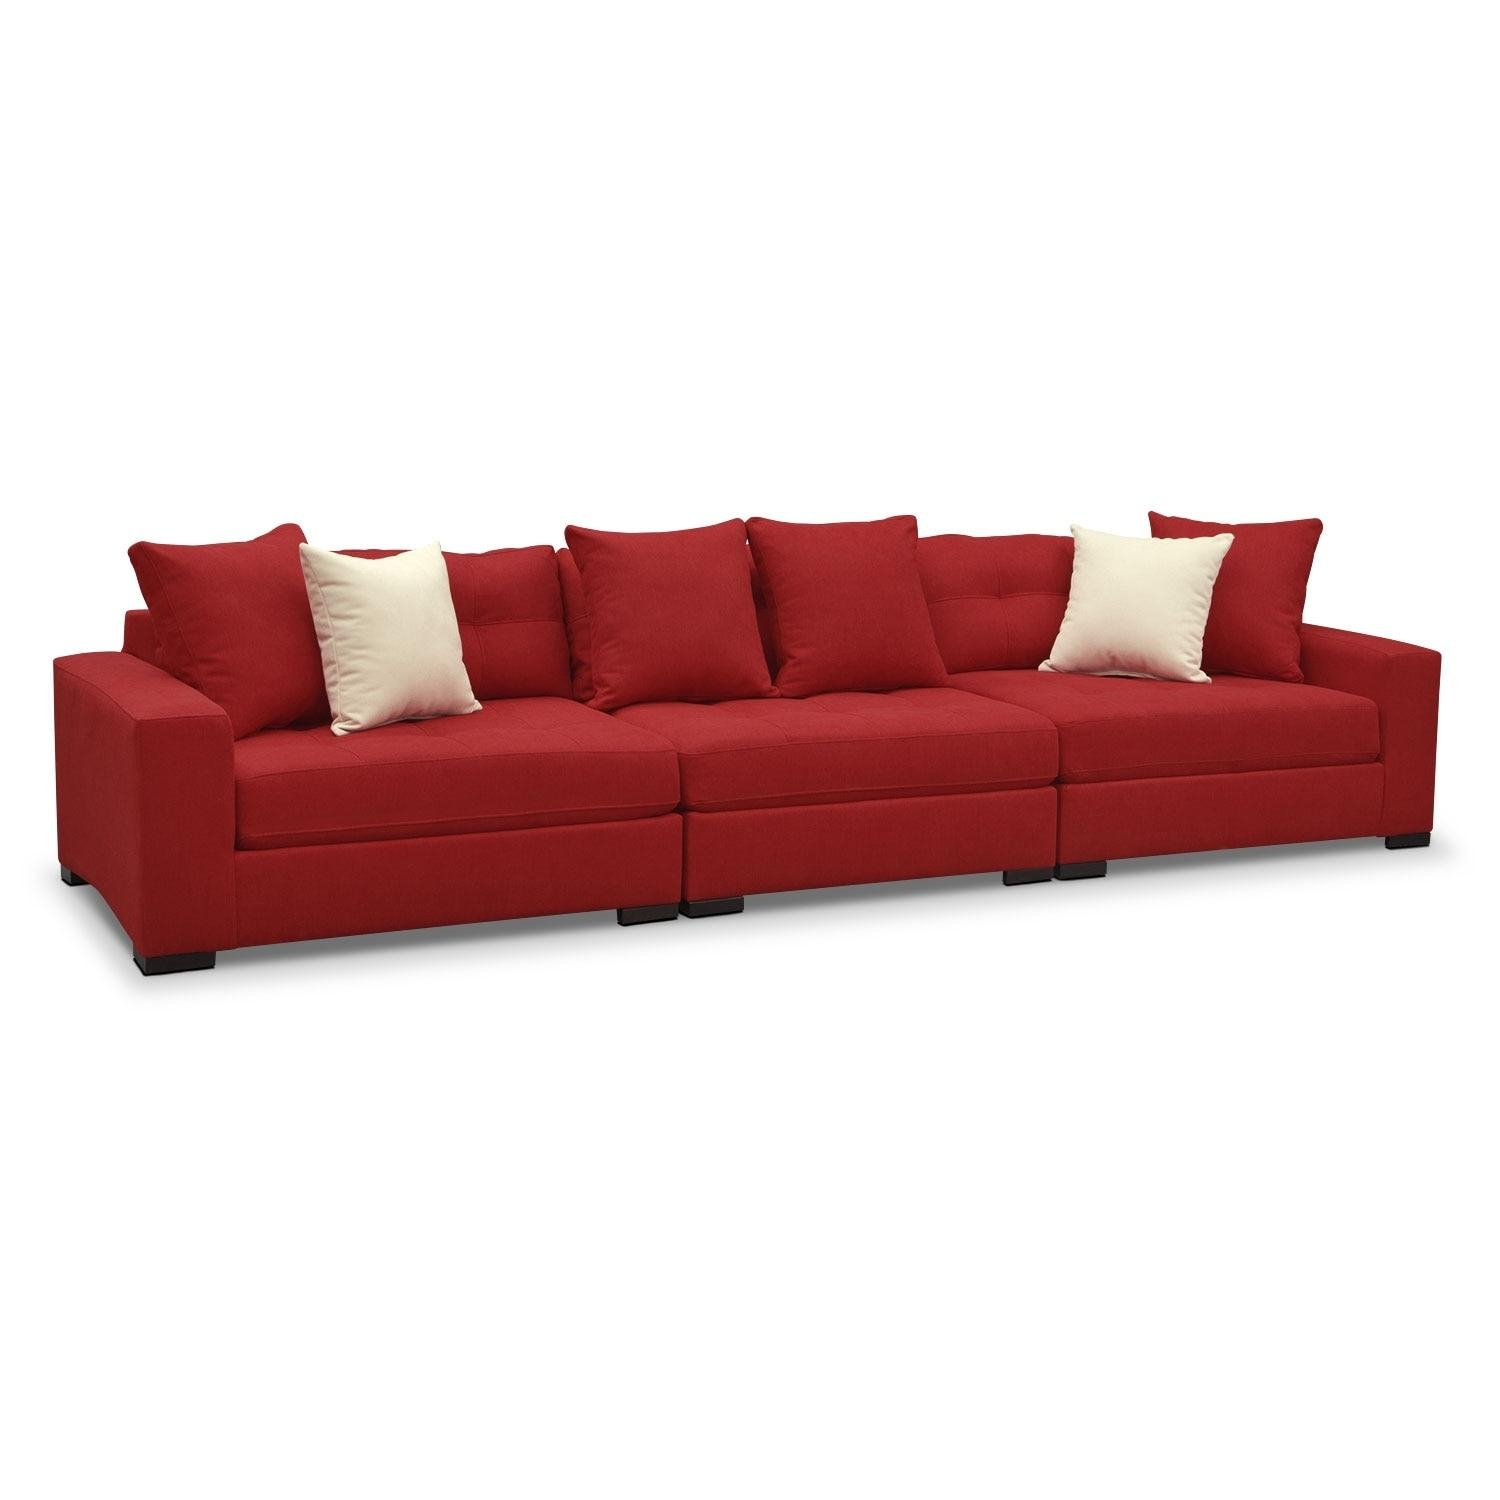 Venti Modular Sofa - Red | Value City Furniture with regard to Value City Sofas